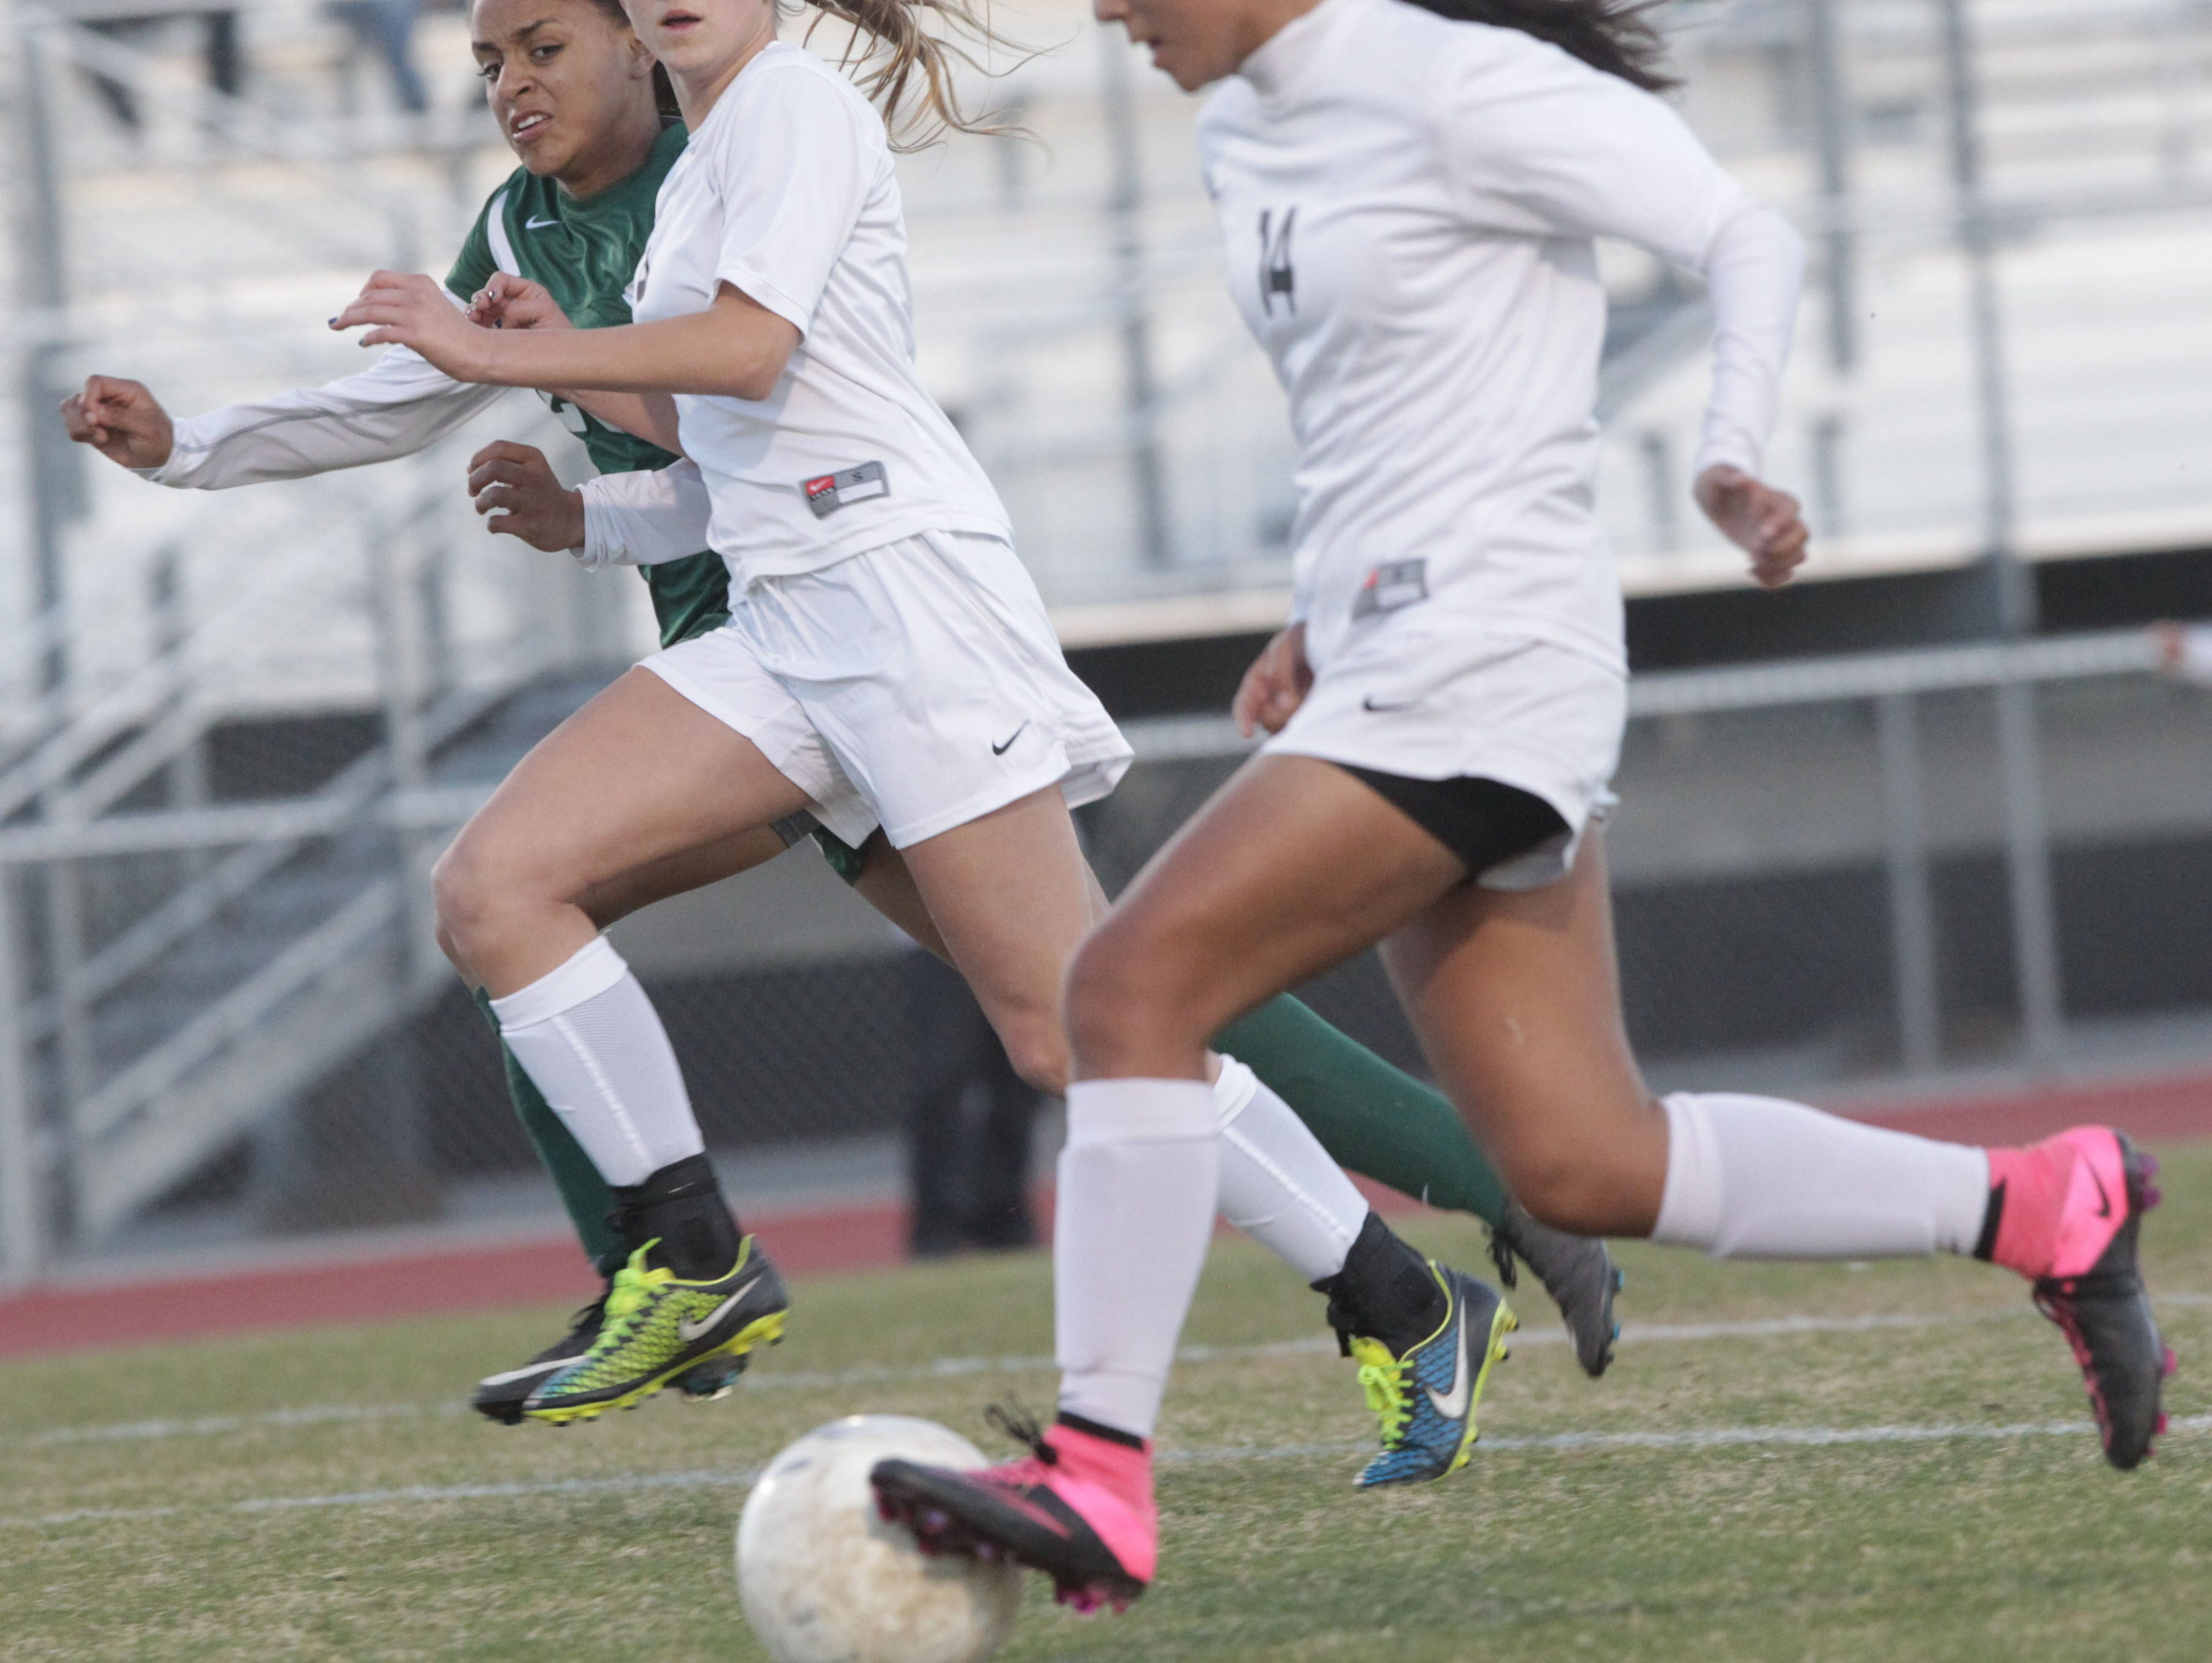 The Shadow Hills High School girls' soccer team will be one to watch in the CIF playoffs.